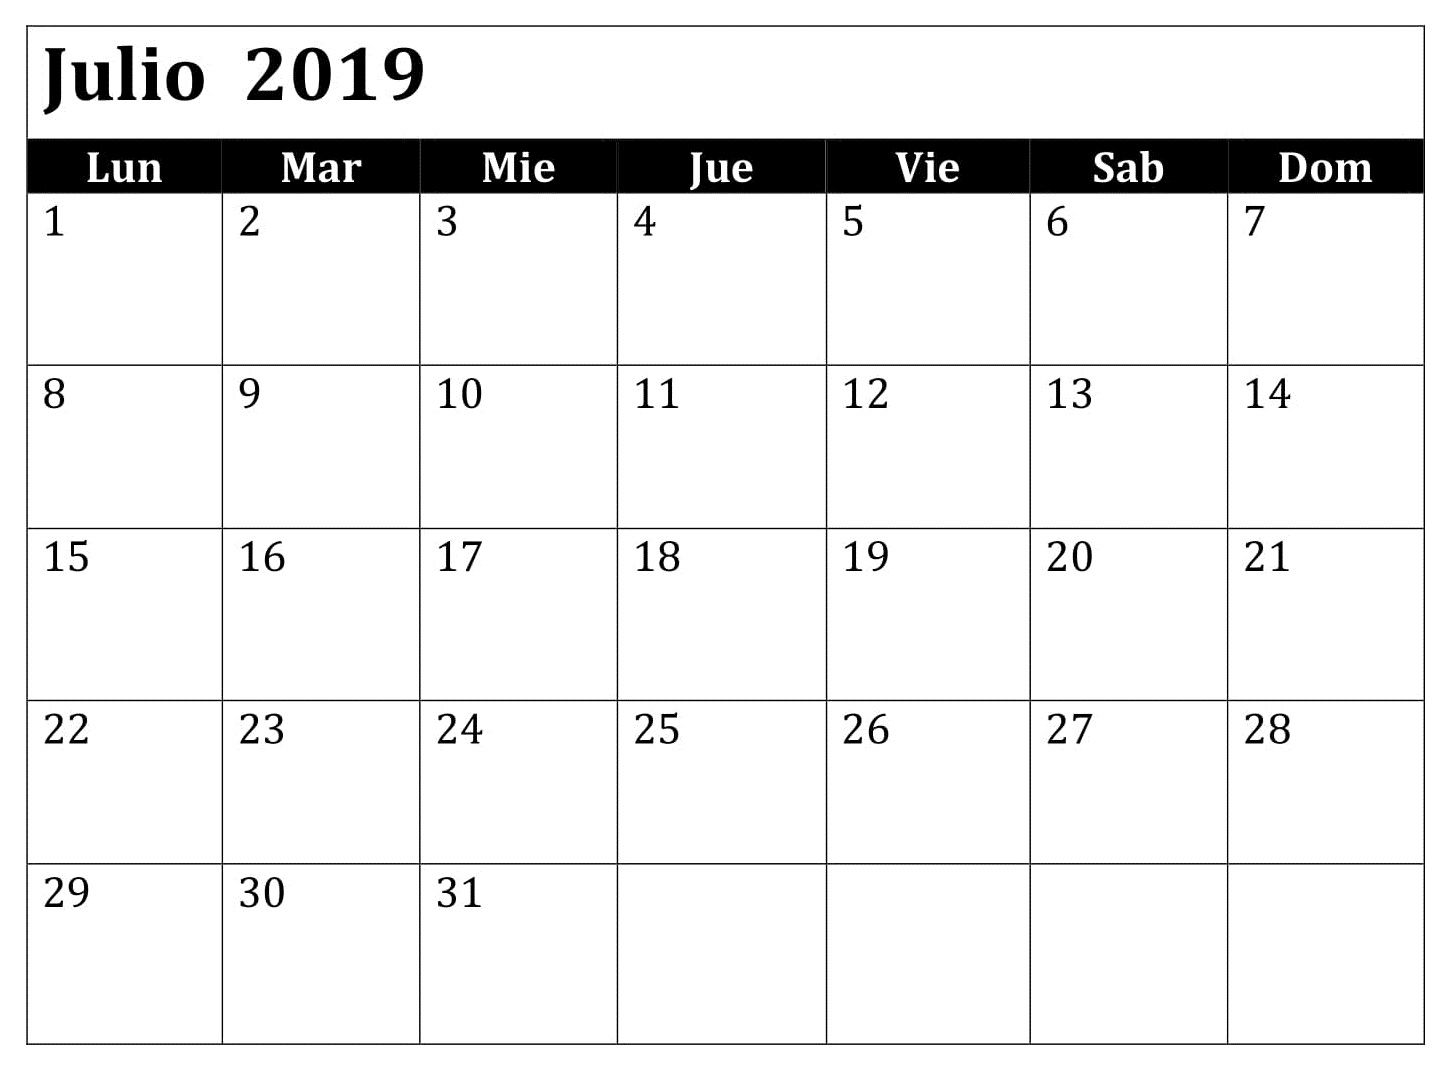 Calendario 2019 Julio.Julio Calendario 2019 Word Calendario Julio 2019 Diagram